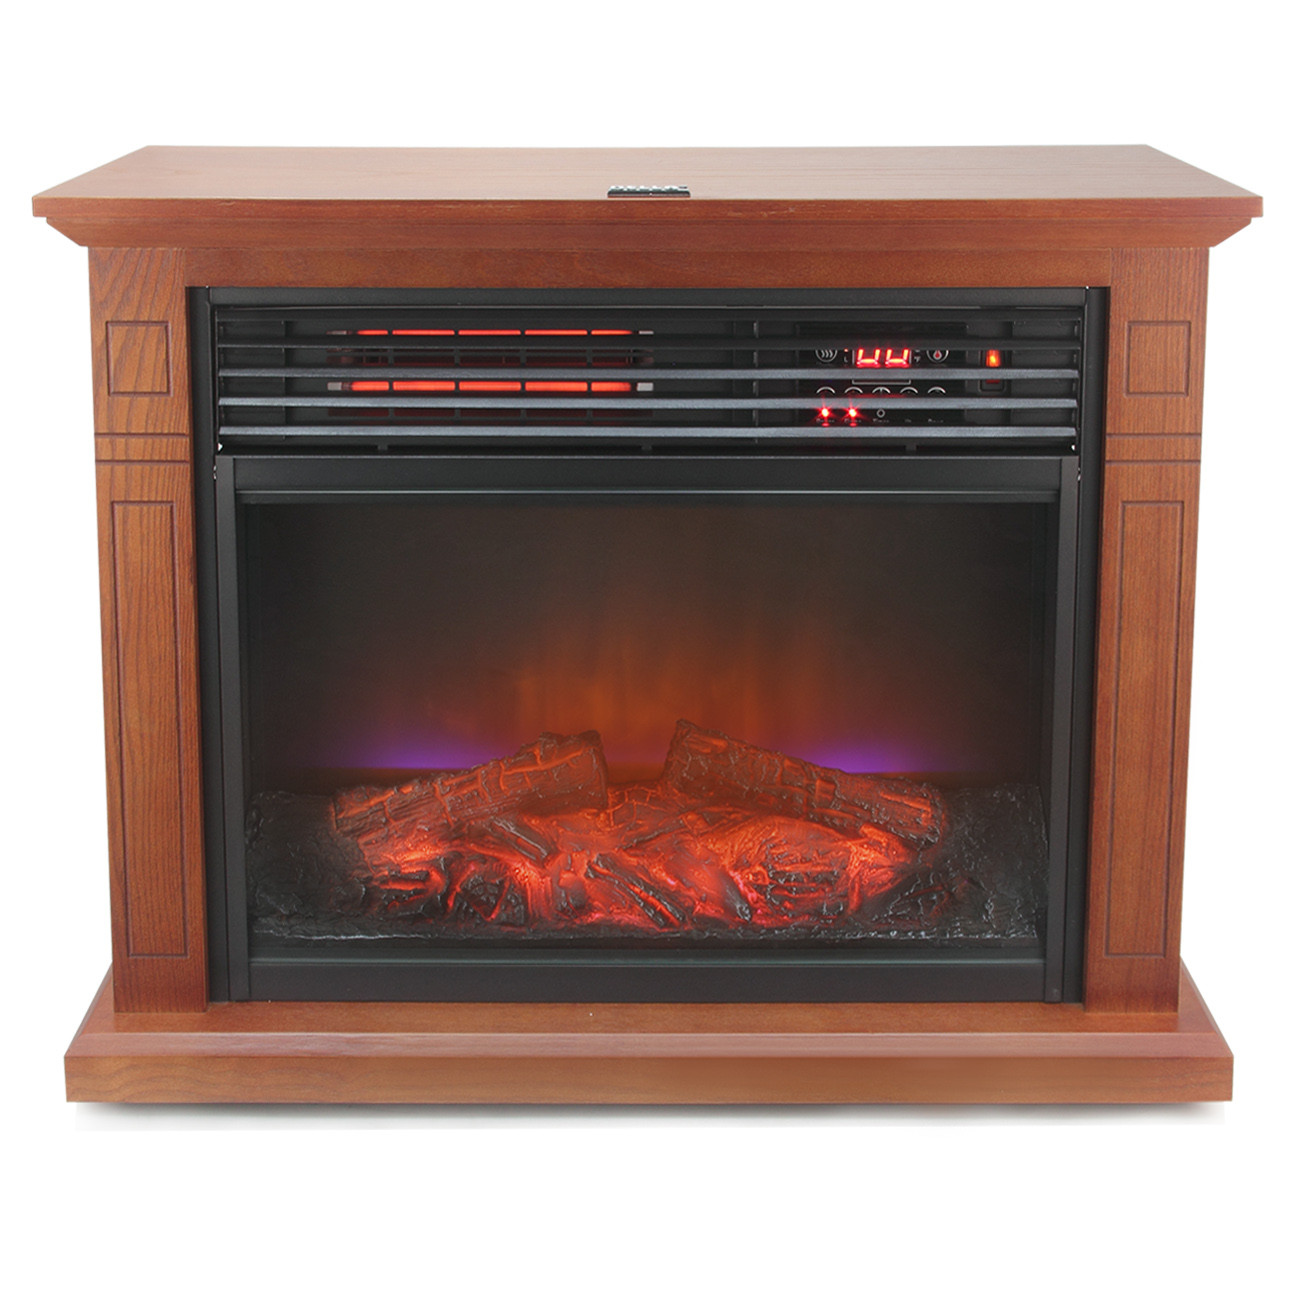 Best ideas about Infrared Fireplace Heater . Save or Pin Infrared Electric pact Fireplace Heater Home Warm Now.